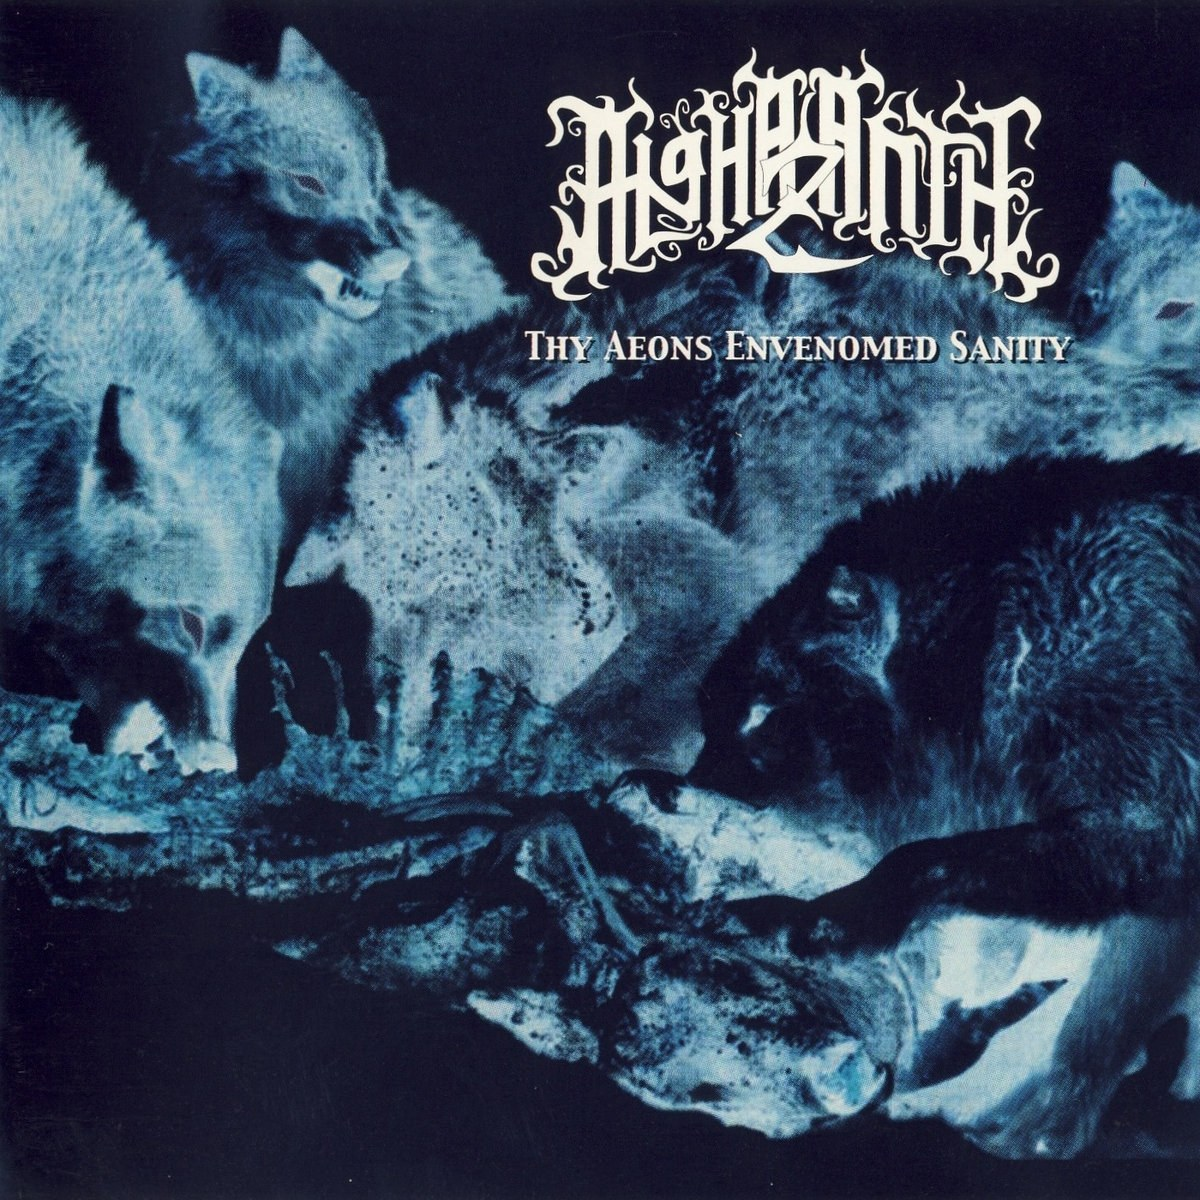 Review for Alghazanth - Thy Aeons Envenomed Sanity